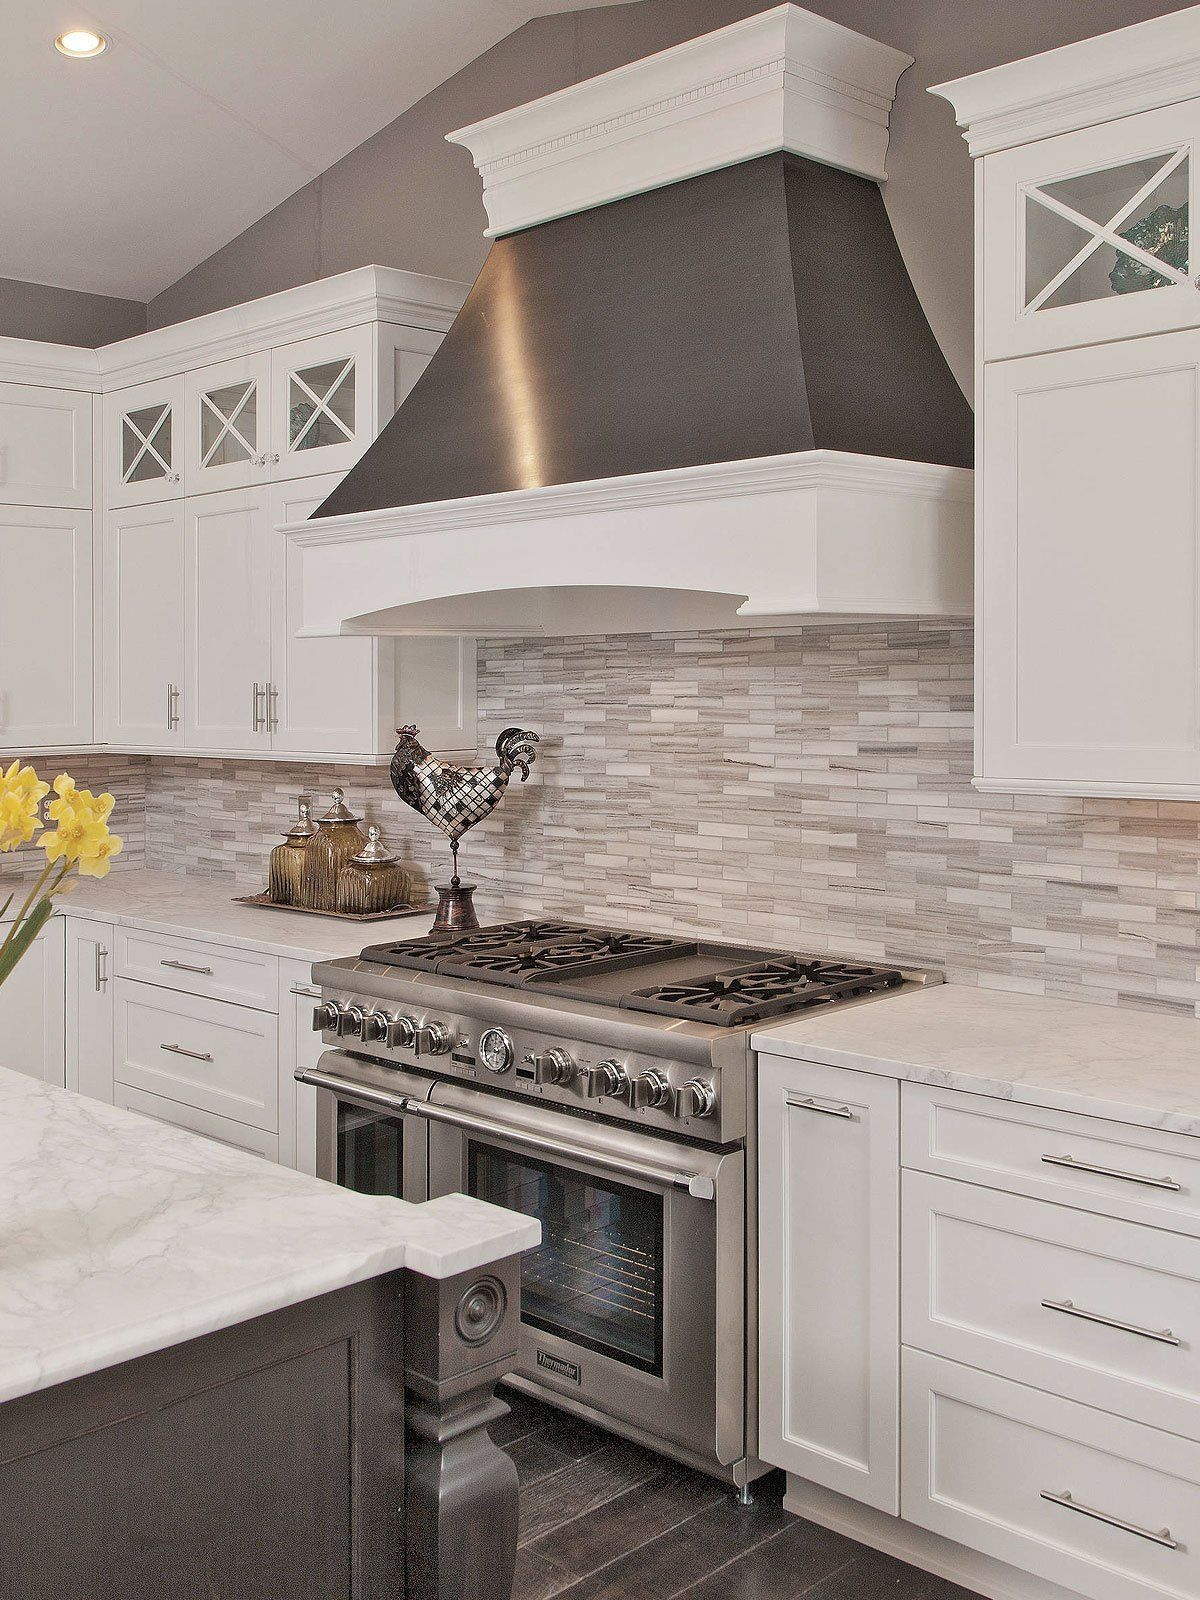 Modern White Gray Subway Marble Backsplash Tile Kitchen Remodel